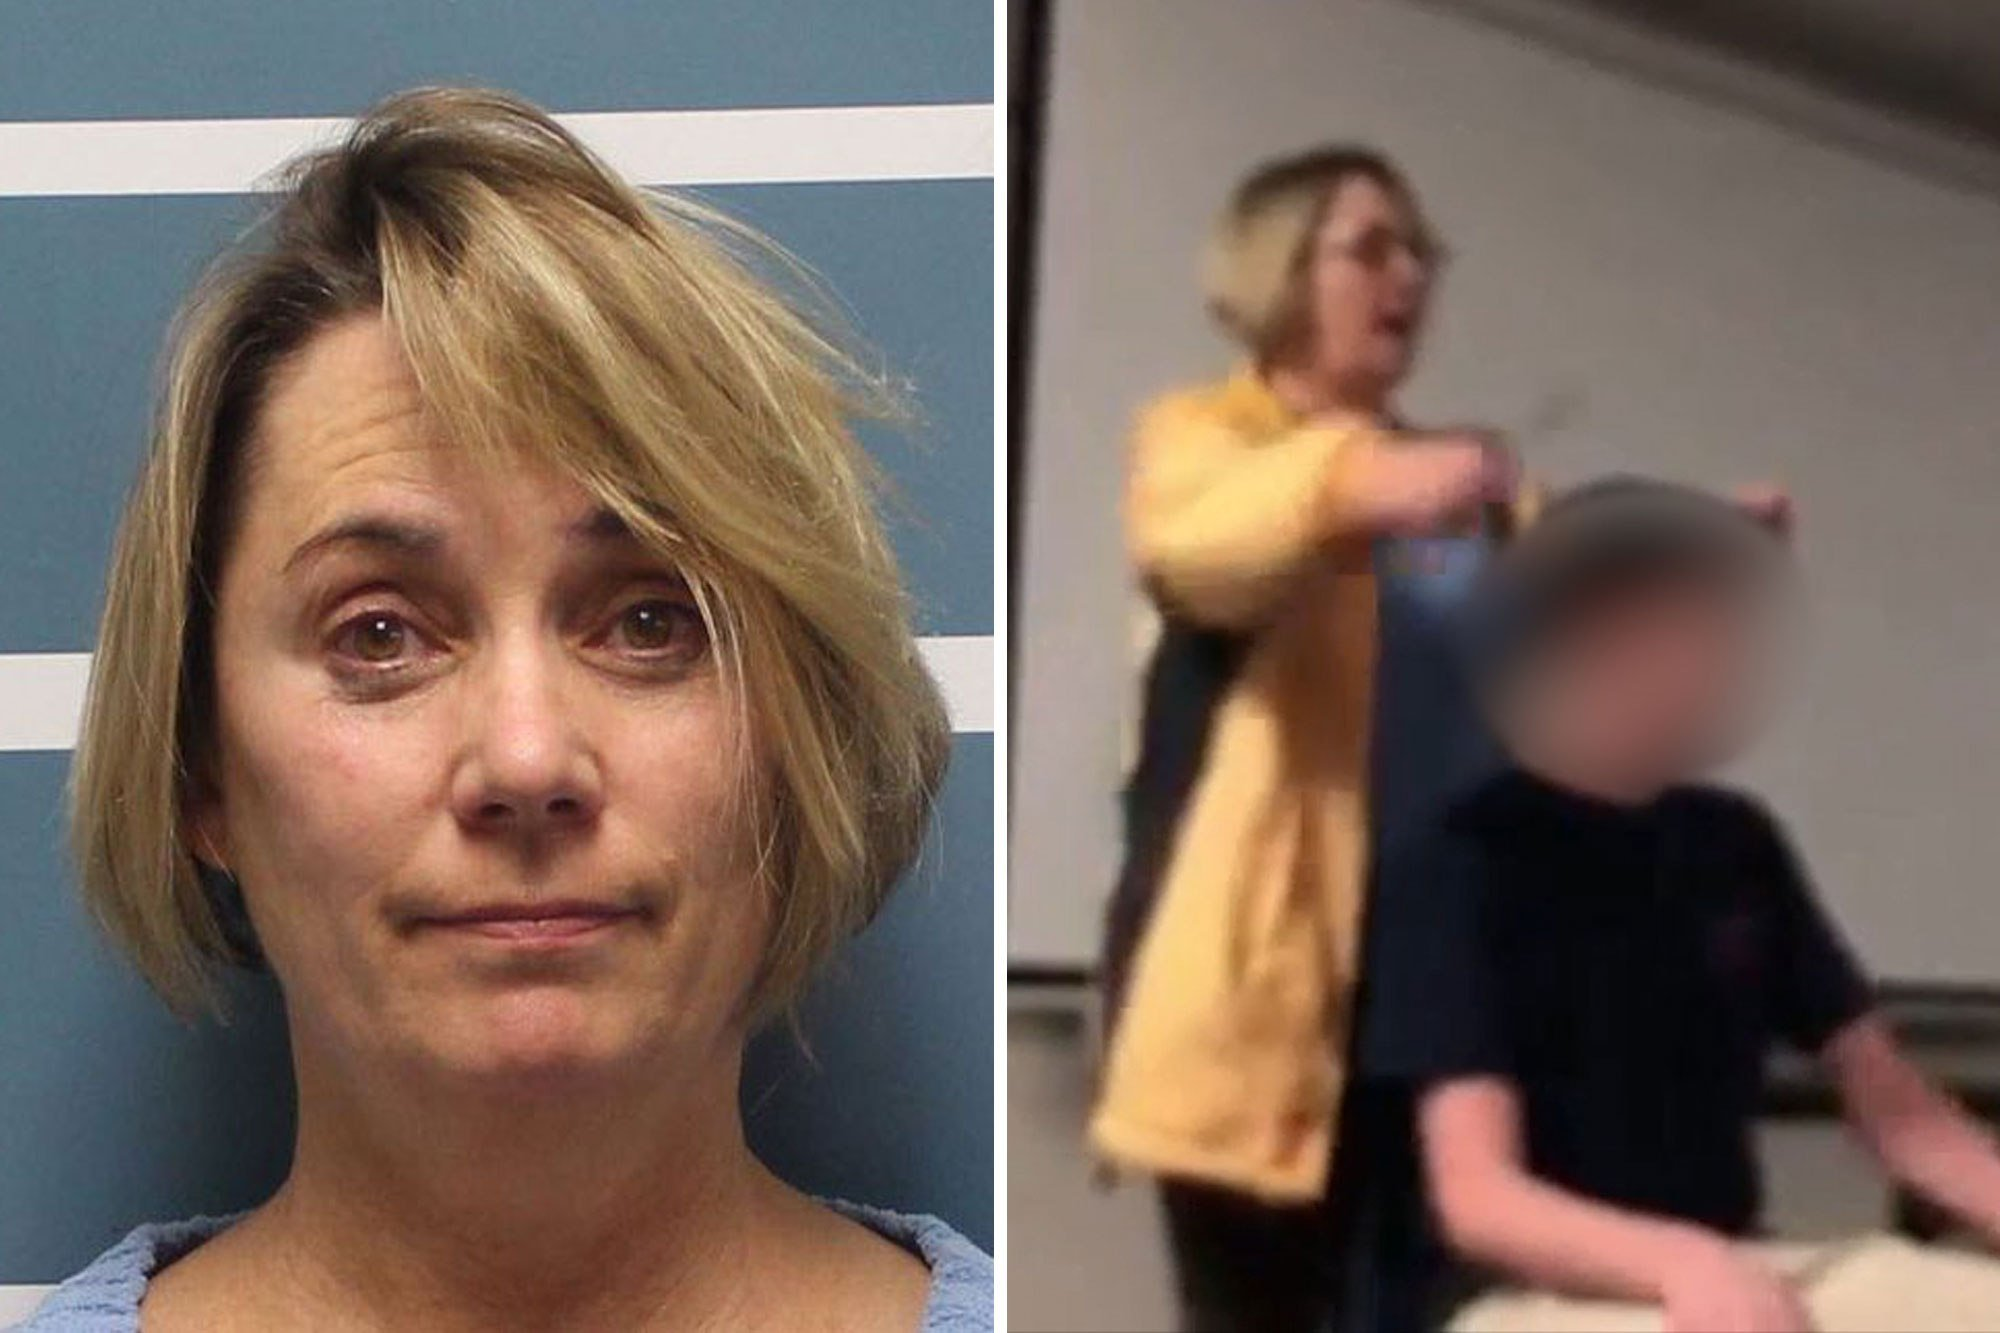 Crazed teacher cuts student's hair while screaming the national anthem